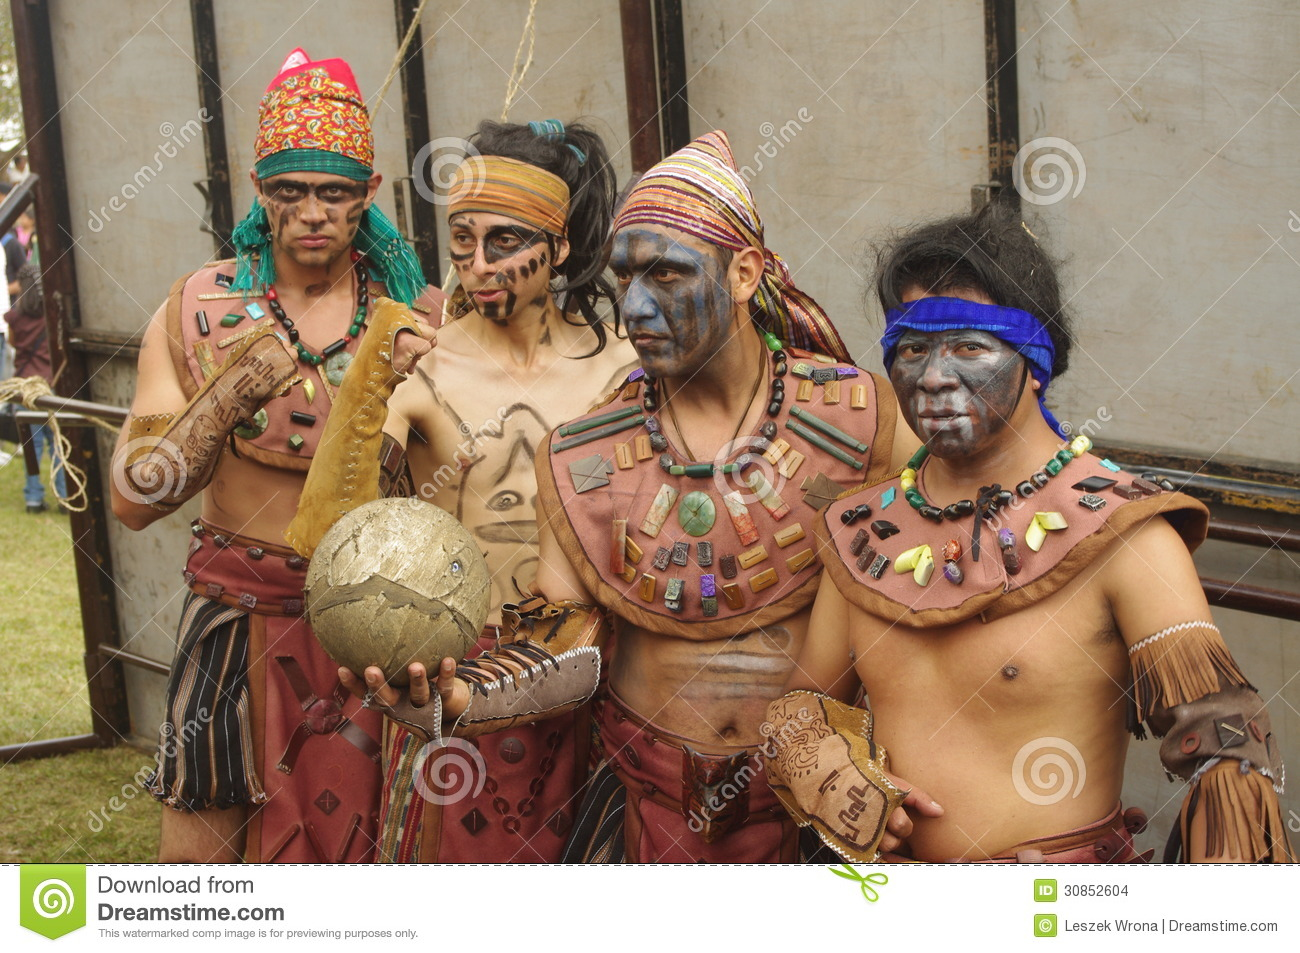 a history of the aztec indians a mesoamerican civilization The maya is a mesoamerican civilization,  aztec civilization did not have draft animals or wheeled vehicles,  aztecs vs mayans.